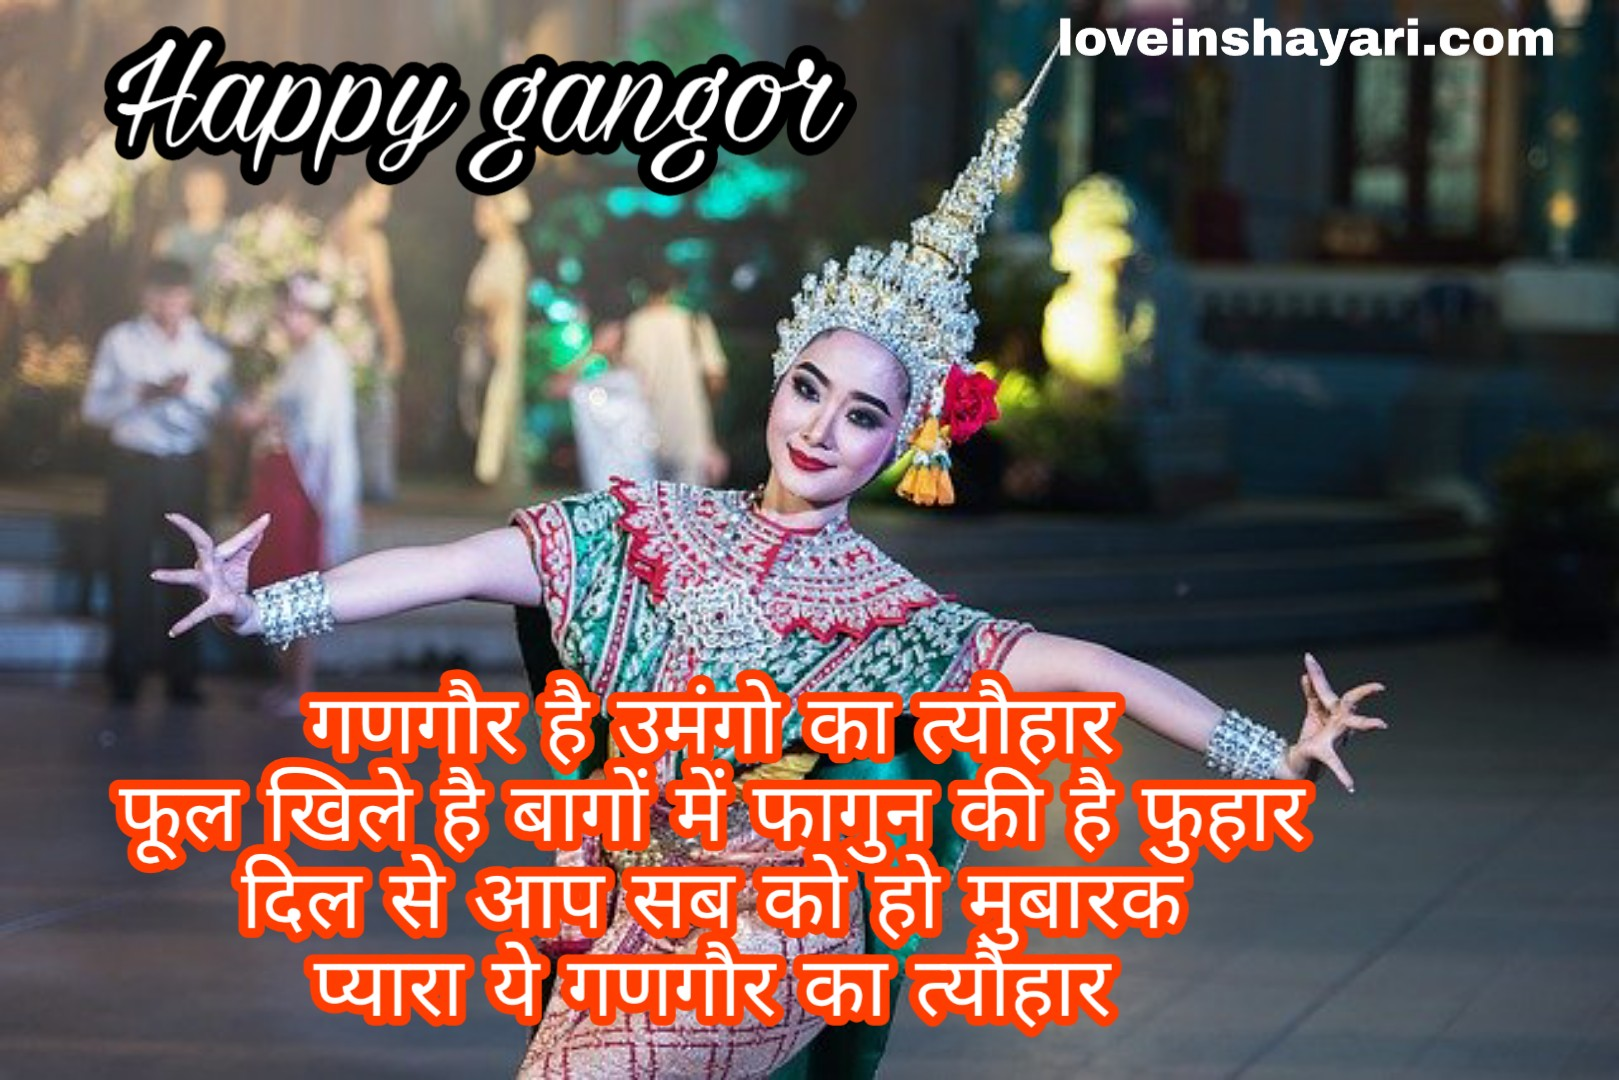 Photo of Gangor wishes shayari images message quotes 2020